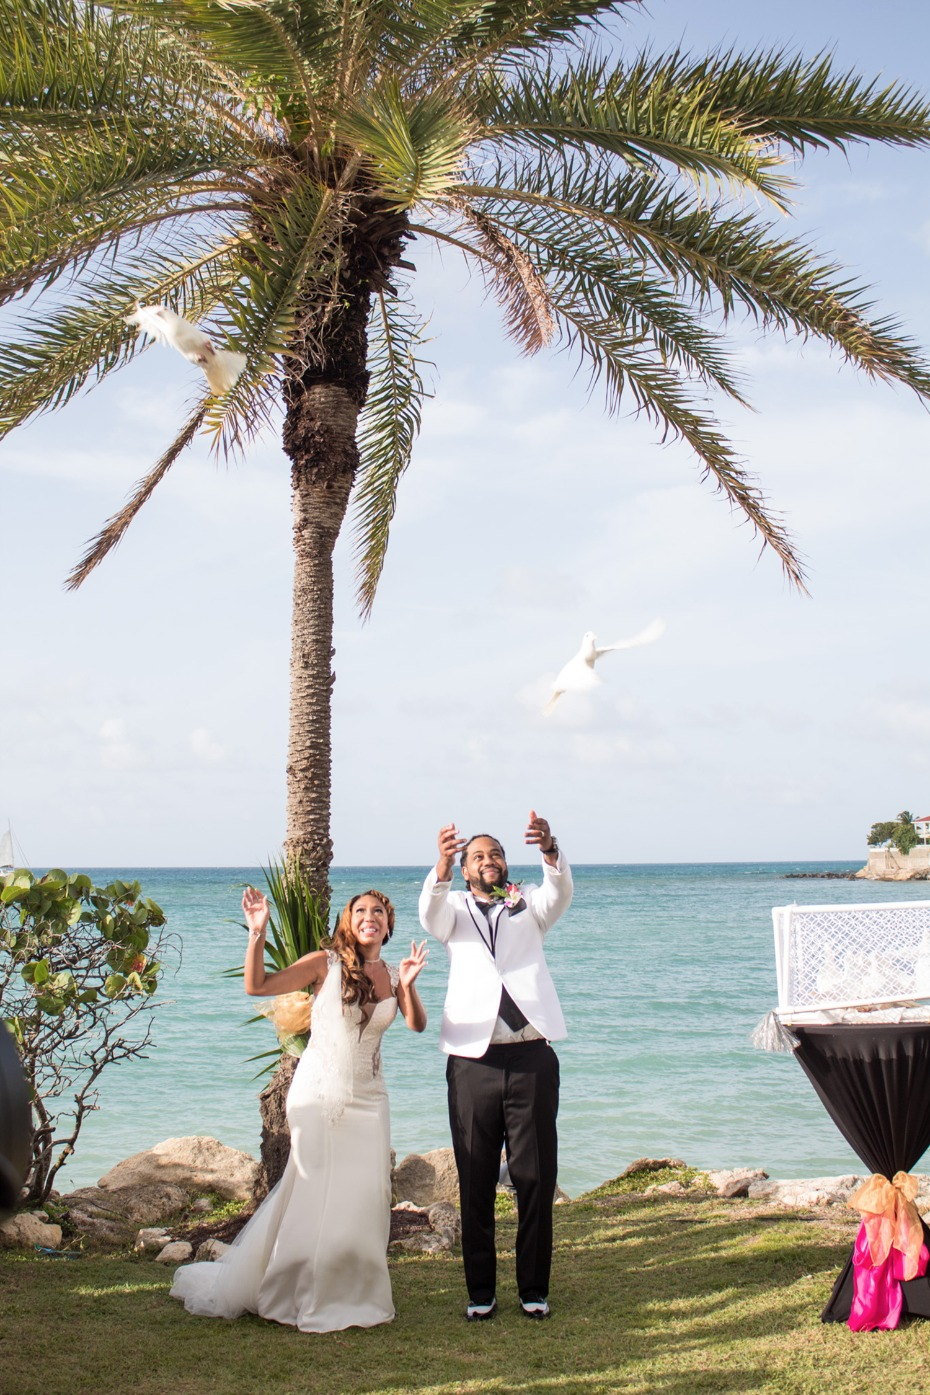 Dove release for their dream wedding in Antigua